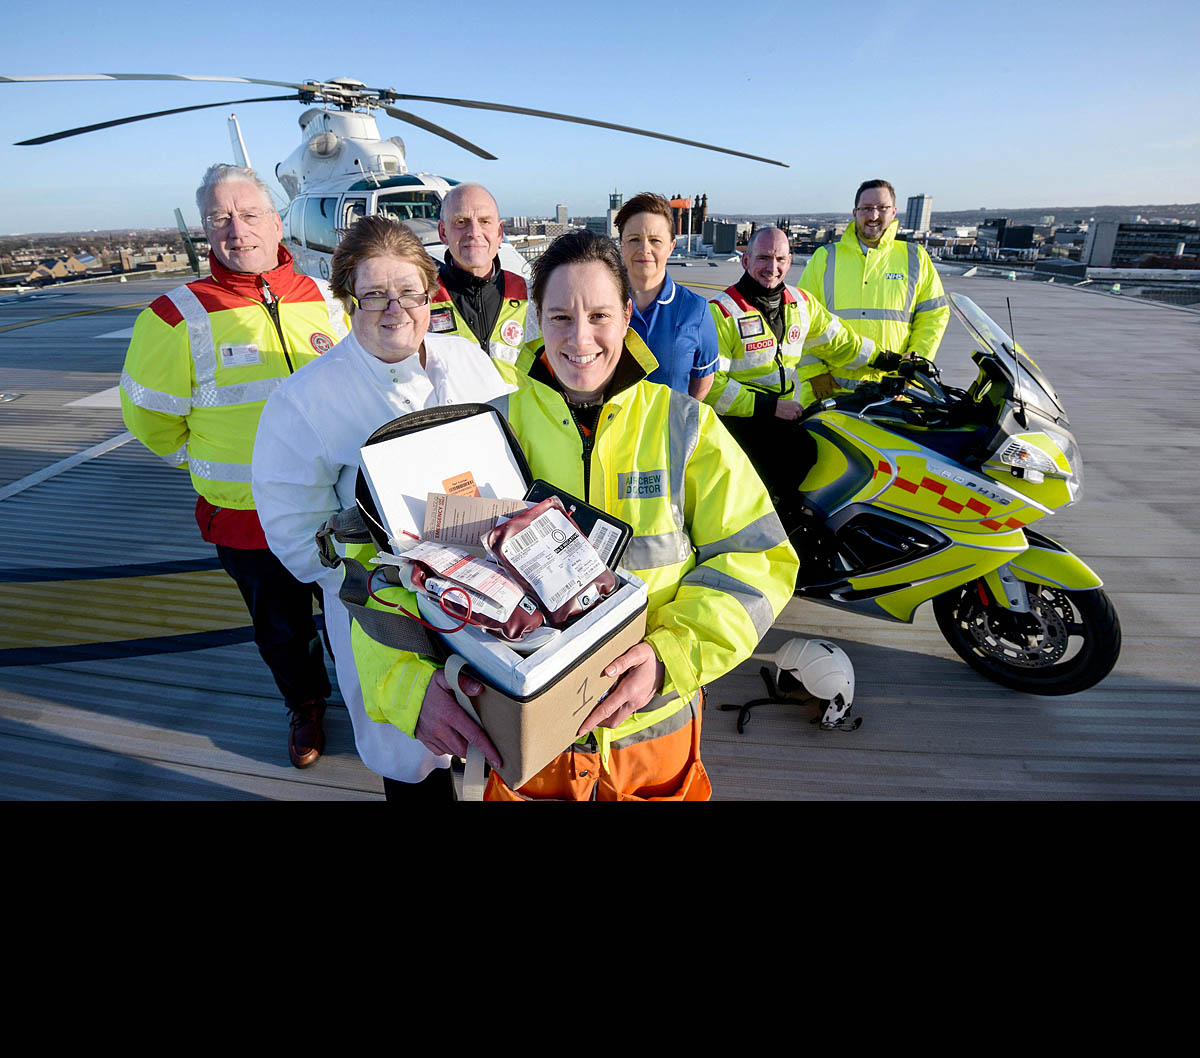 northumbria helicopters with Air Ambulance Blood Scheme Could Save Stricken Walkers Lives on Support For The Armed Forces reservists dr Rachel Hawes likewise Tynemouth Lifeboats Launched After Man Walks Into Sea together with Glider also cheshirehelicopters co as well Police Work.